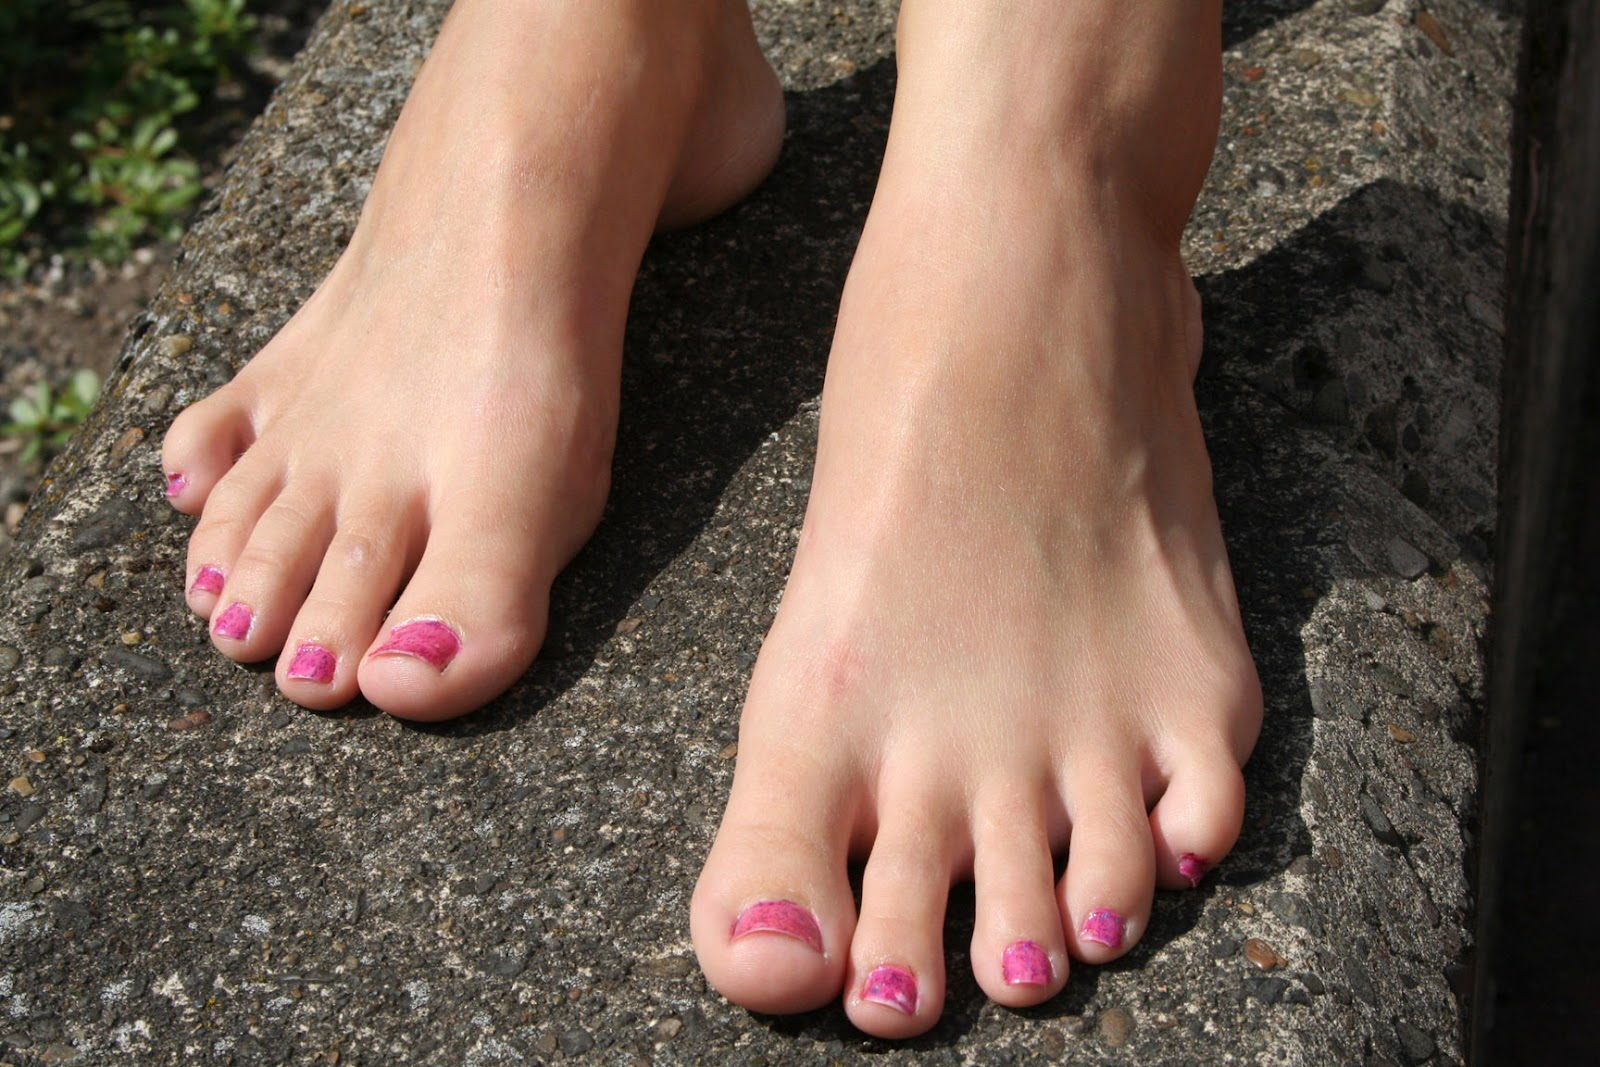 Pin on From The Tip of Her Toes